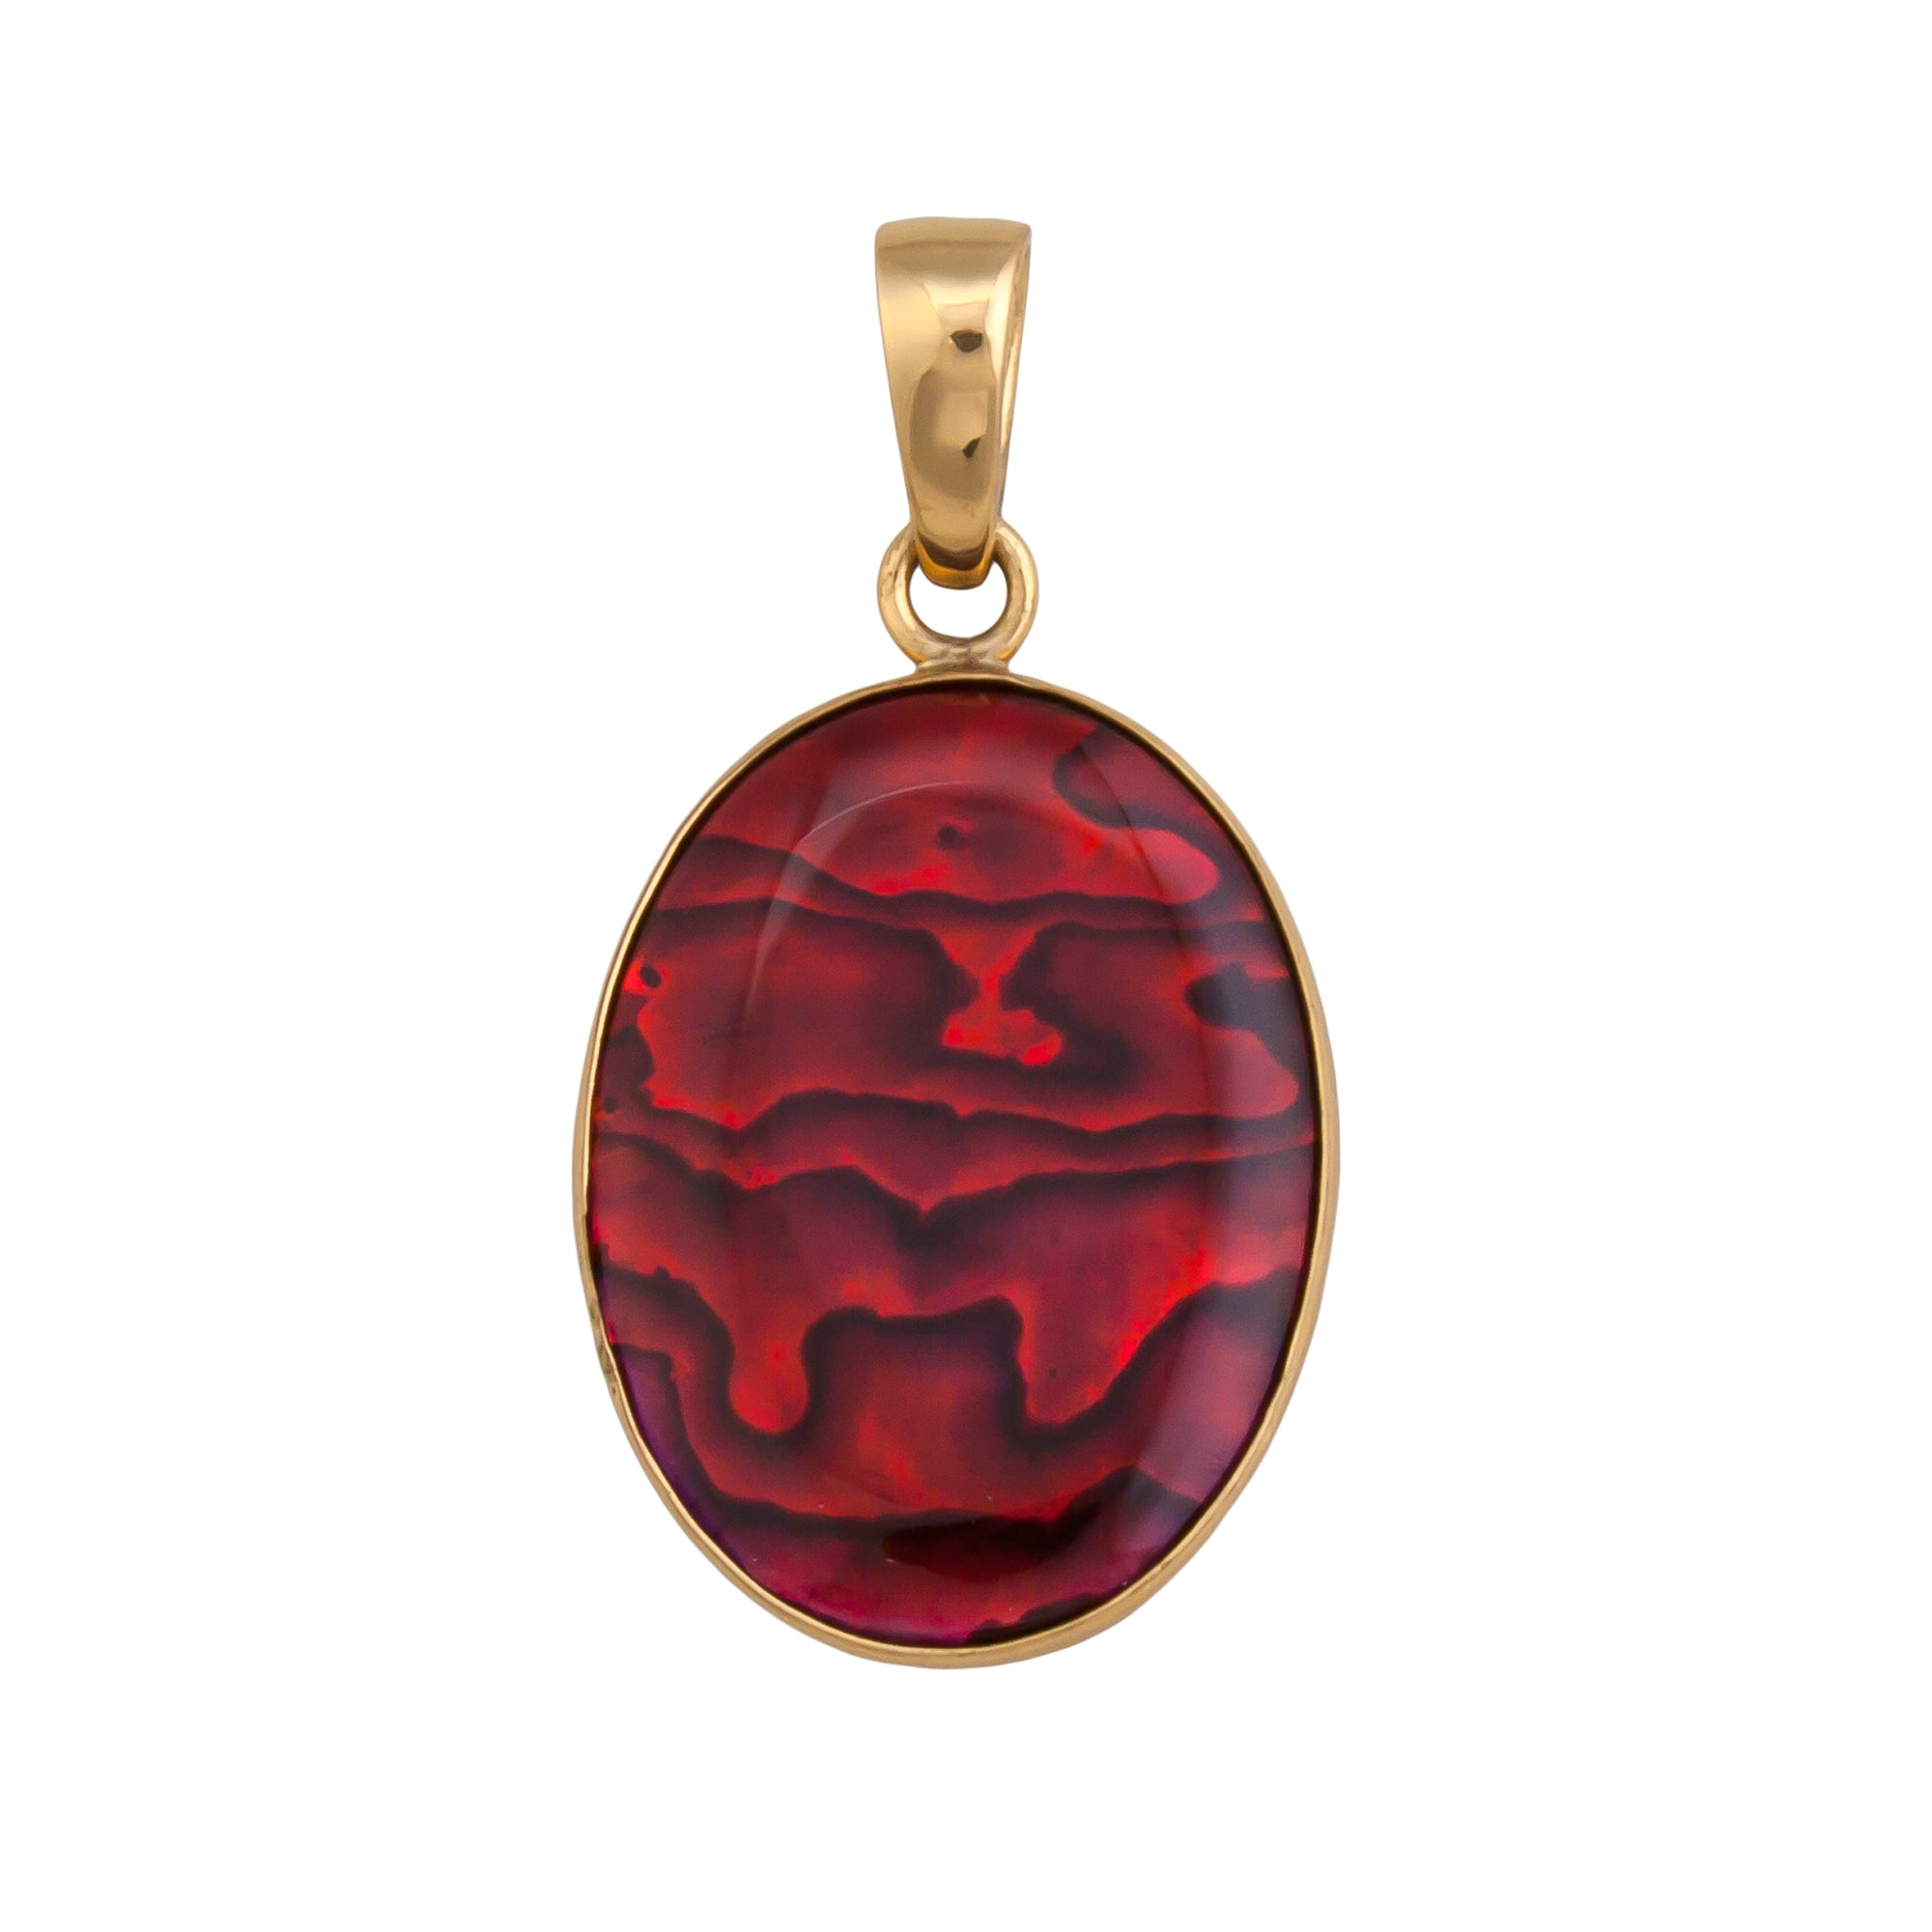 Alchemia Red Abalone Pendant